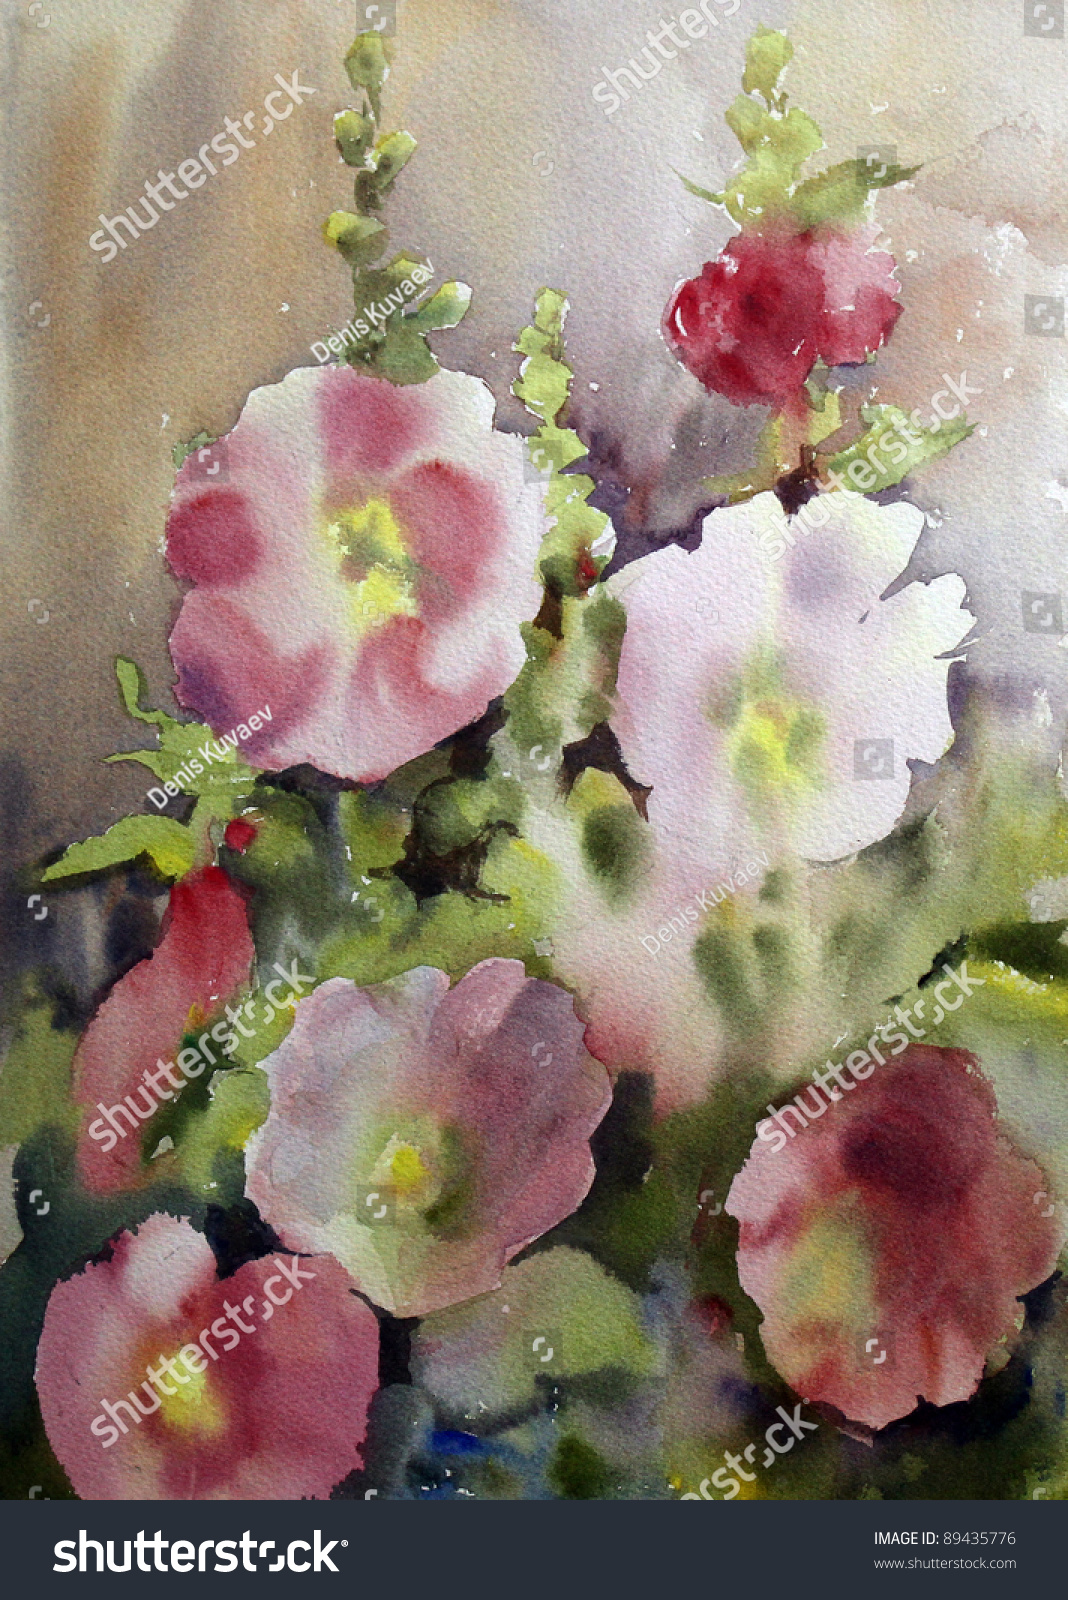 Watercolor painting beautiful flowers mallow stock illustration watercolor painting of the beautiful flowers mallow izmirmasajfo